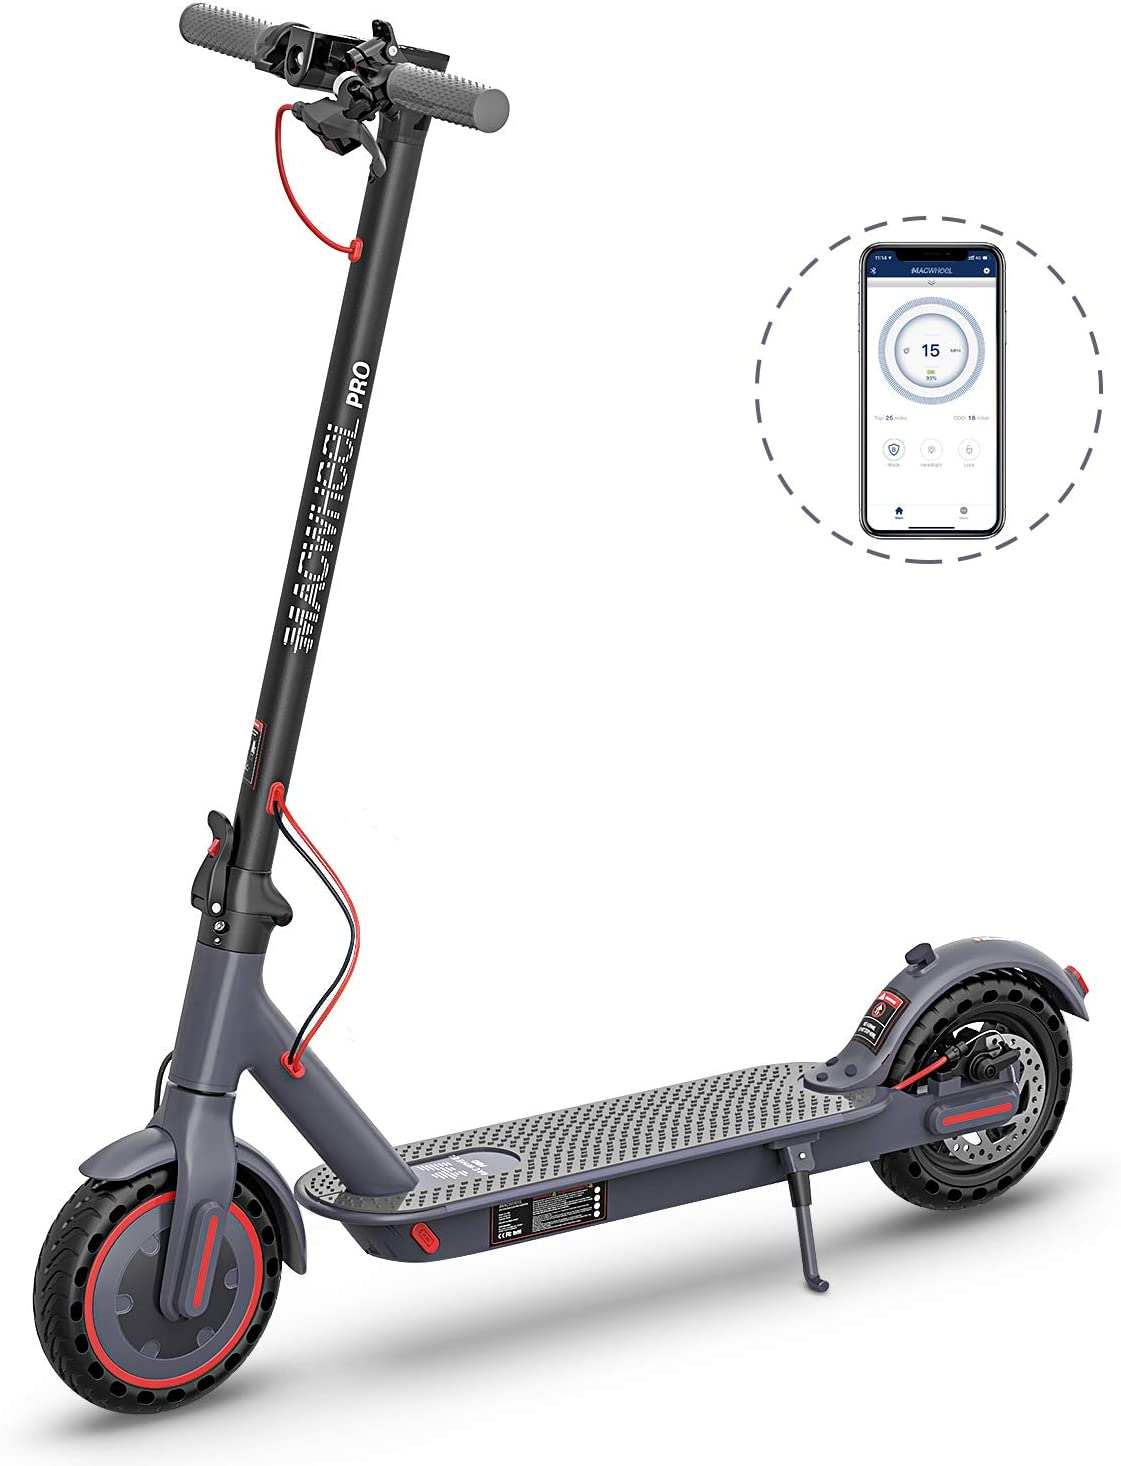 macwheel MX pro electric scooter